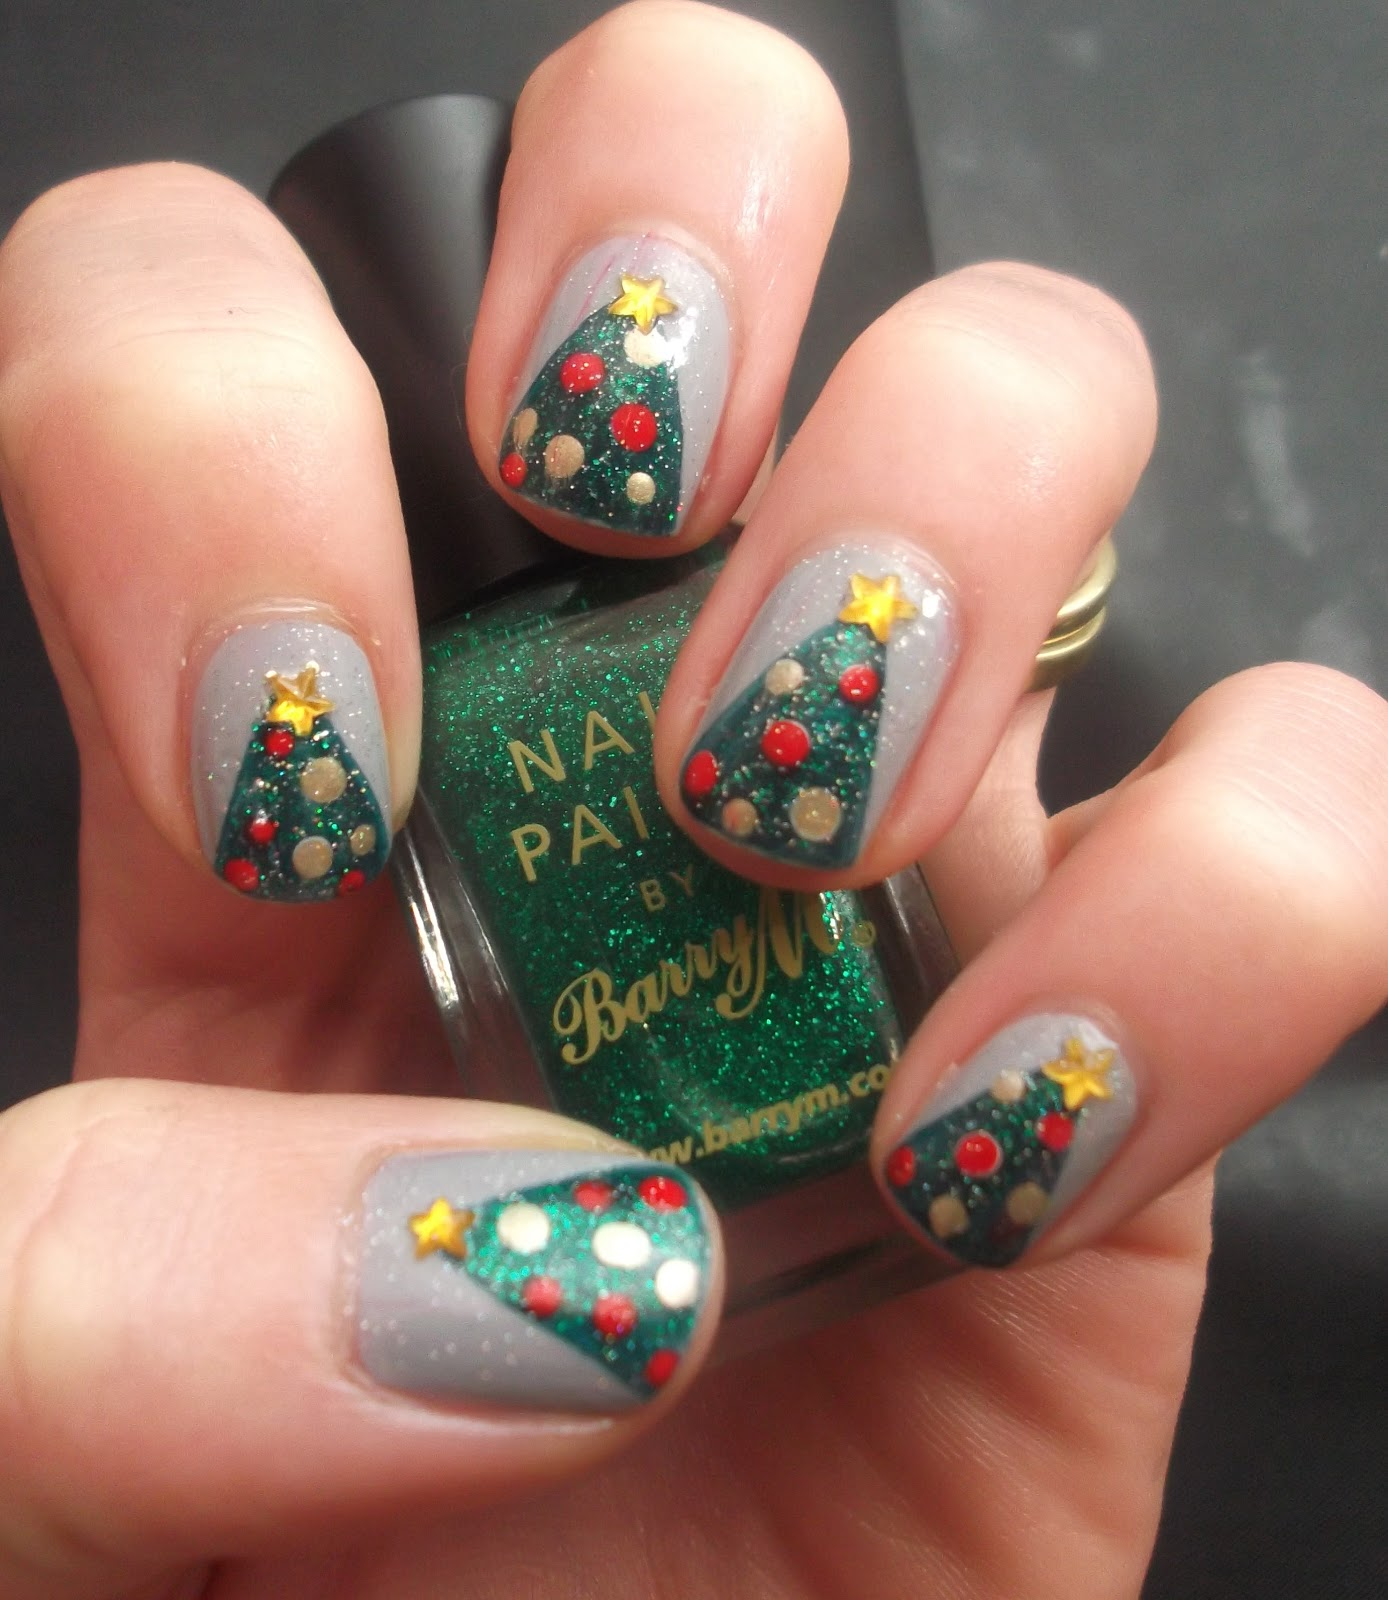 Lou Is Perfectly Polished: Christmas Nails: Christmas Trees